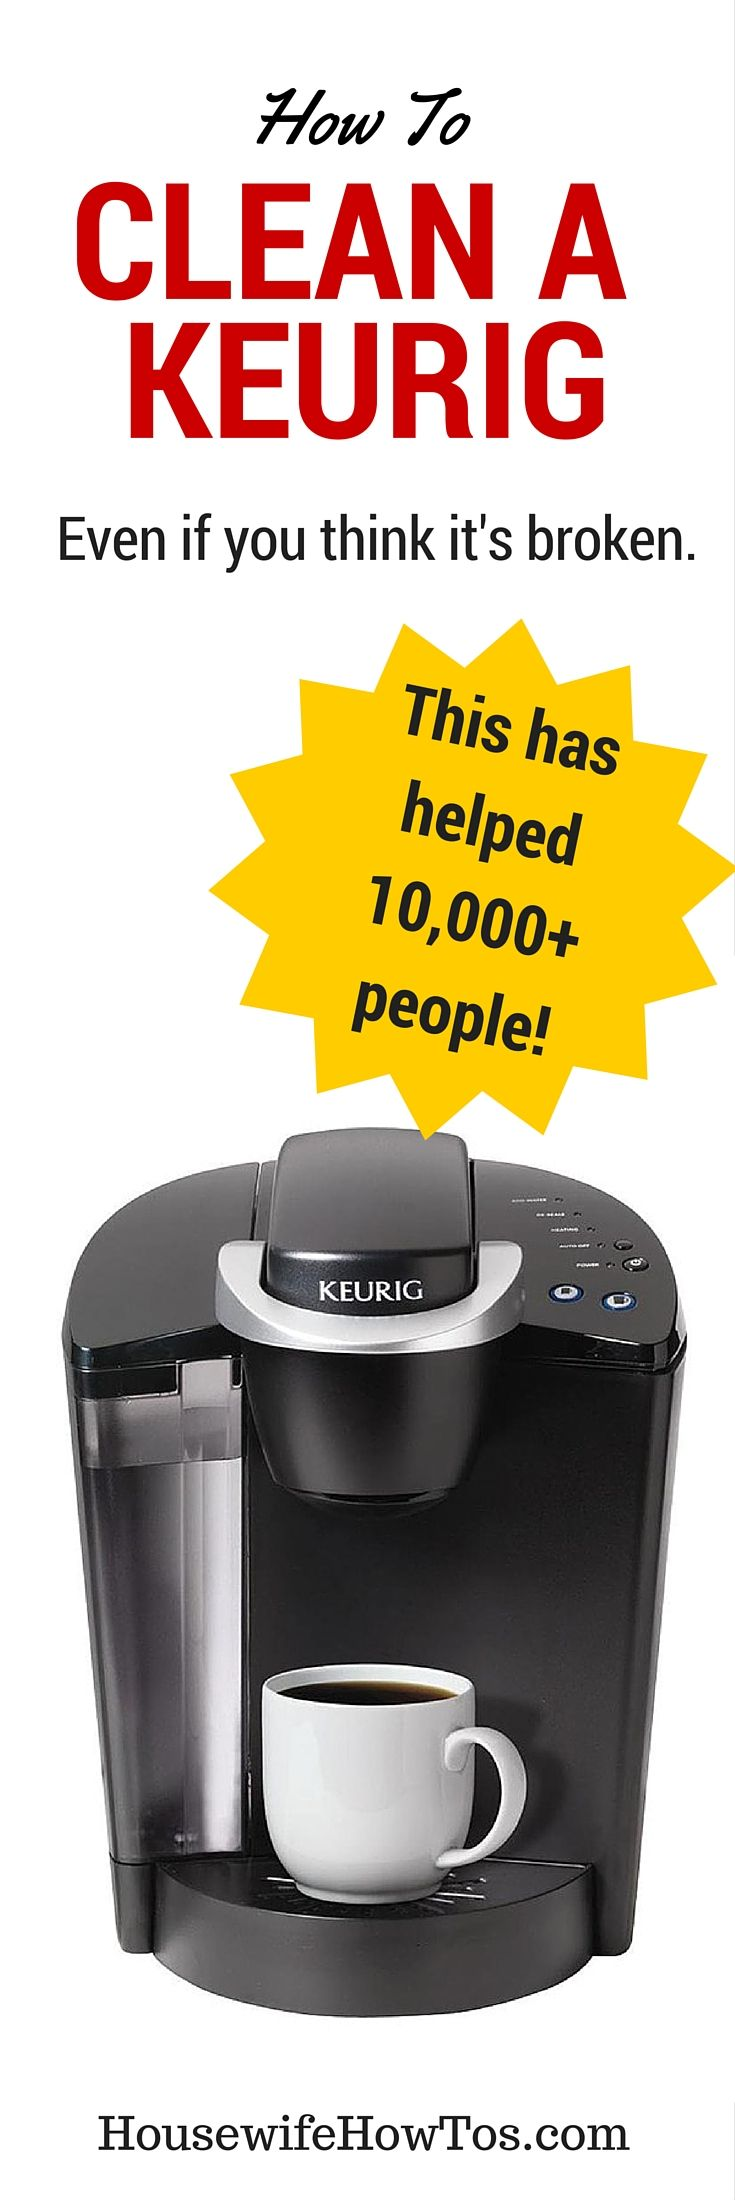 Is your Keurig brewing slowly? Shorting your cup? Or maybe it's not working at all? These 9 easy steps have helped 1,000+ people get theirs working like new!